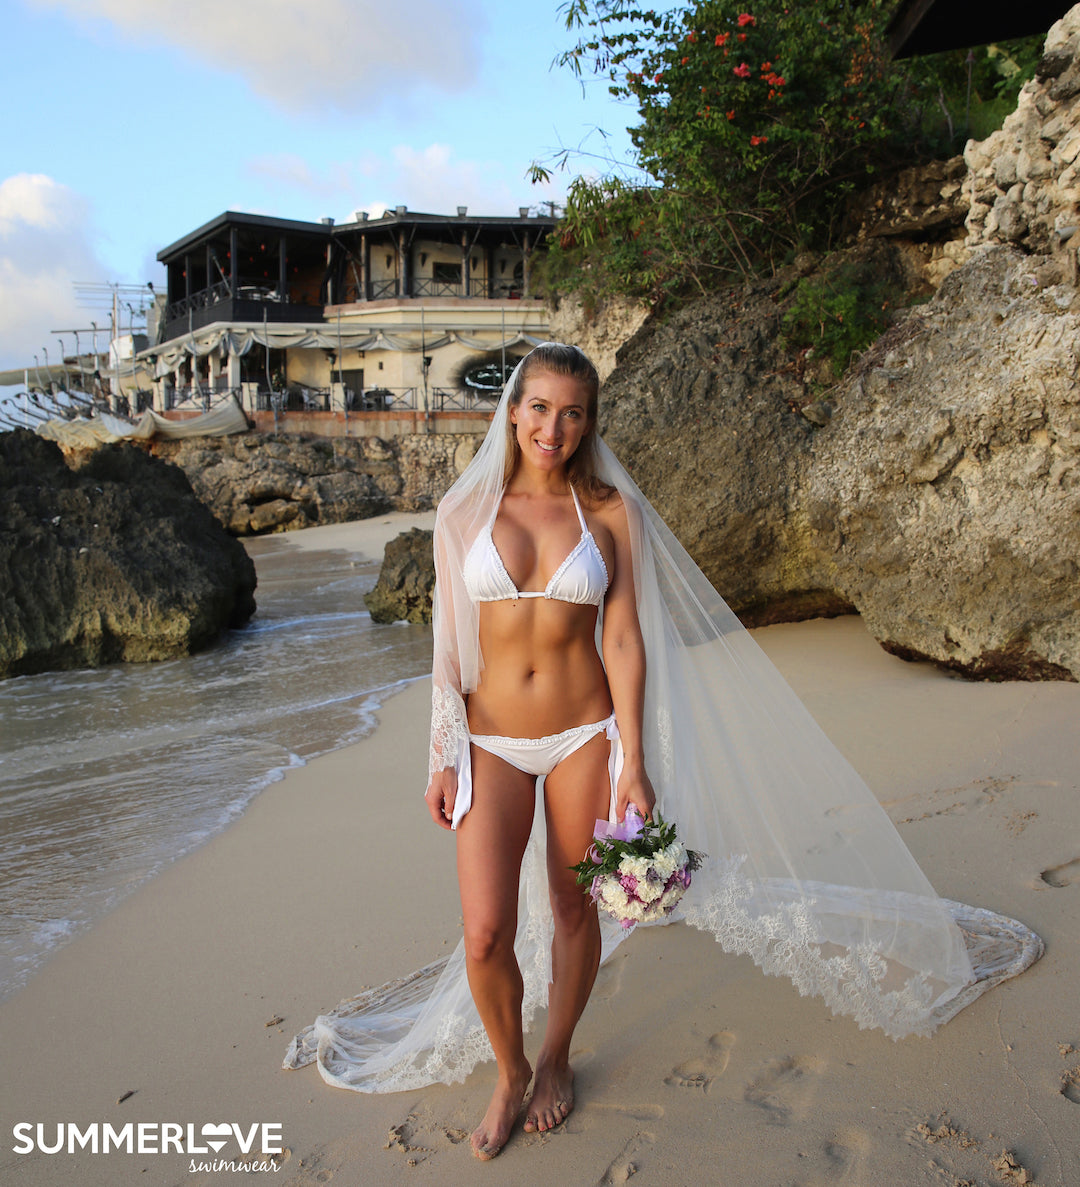 Young brides bikini, jack jill masturbation party